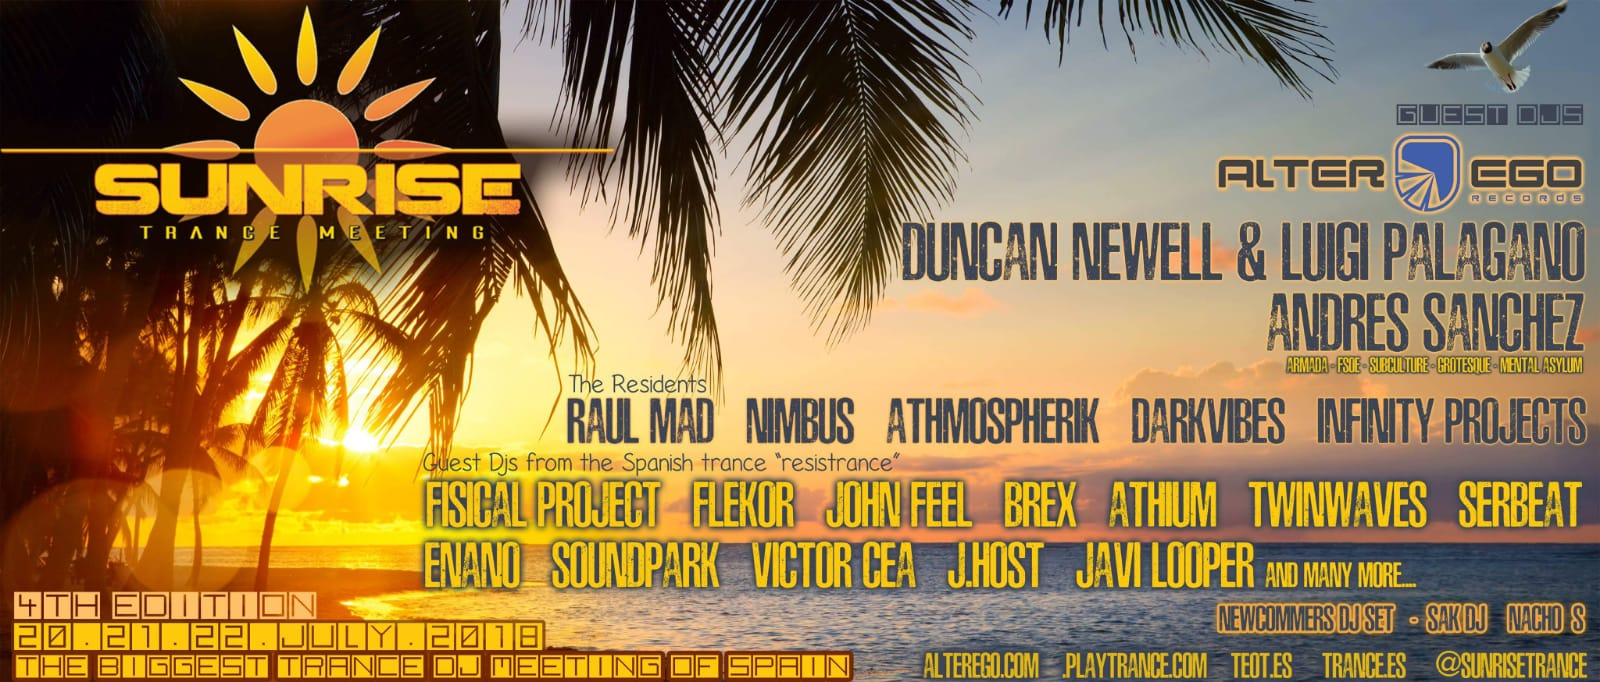 Cuarta edición de Sunrise Trance Meeting